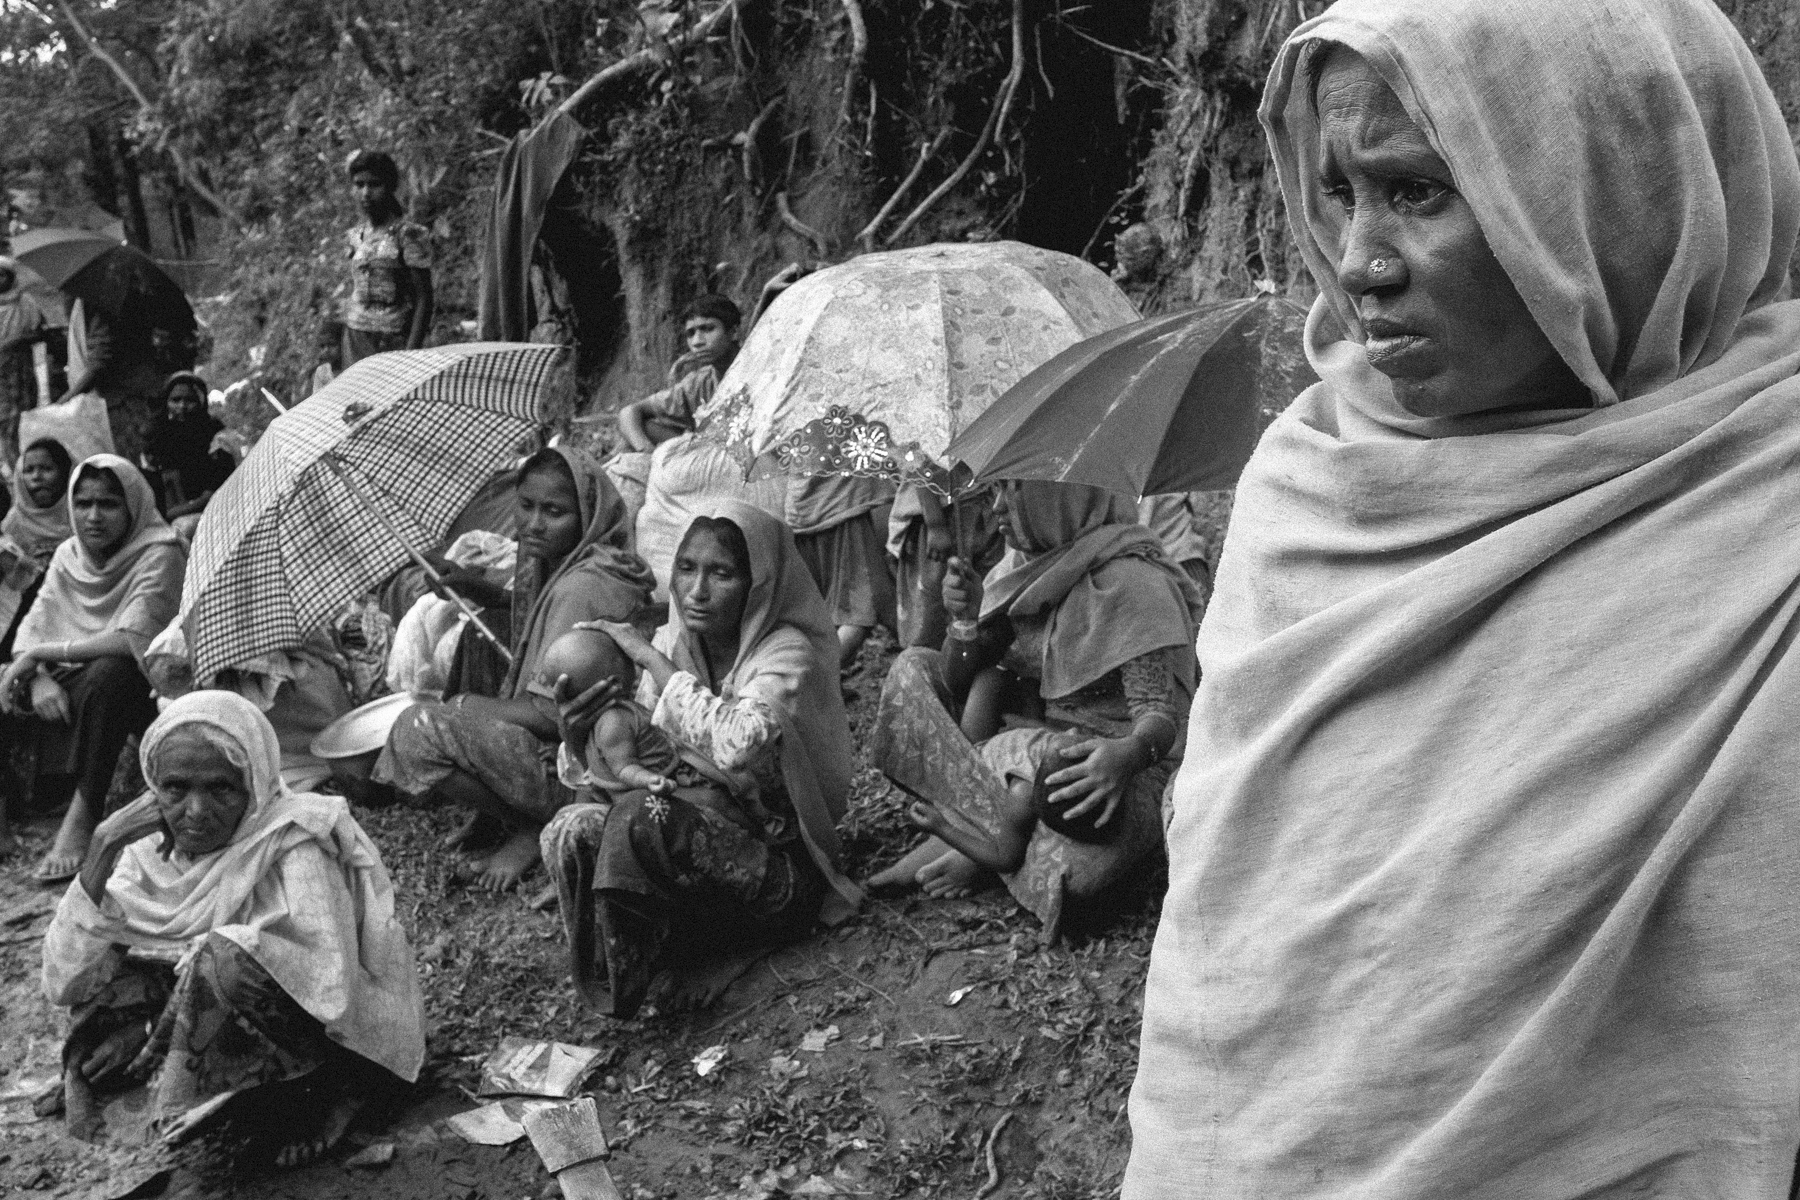 Rohingya women and children who just arrived in Bangladesh sit along the side of the road near Thaing Khali, Bangladesh.  All over the Cox's Bazar region of Bangladesh tens of thousands of Rohingya refugees from Myanmar line the sides of roads as they don't have the money to build a shelter in one of the sprawling makeshift camps.